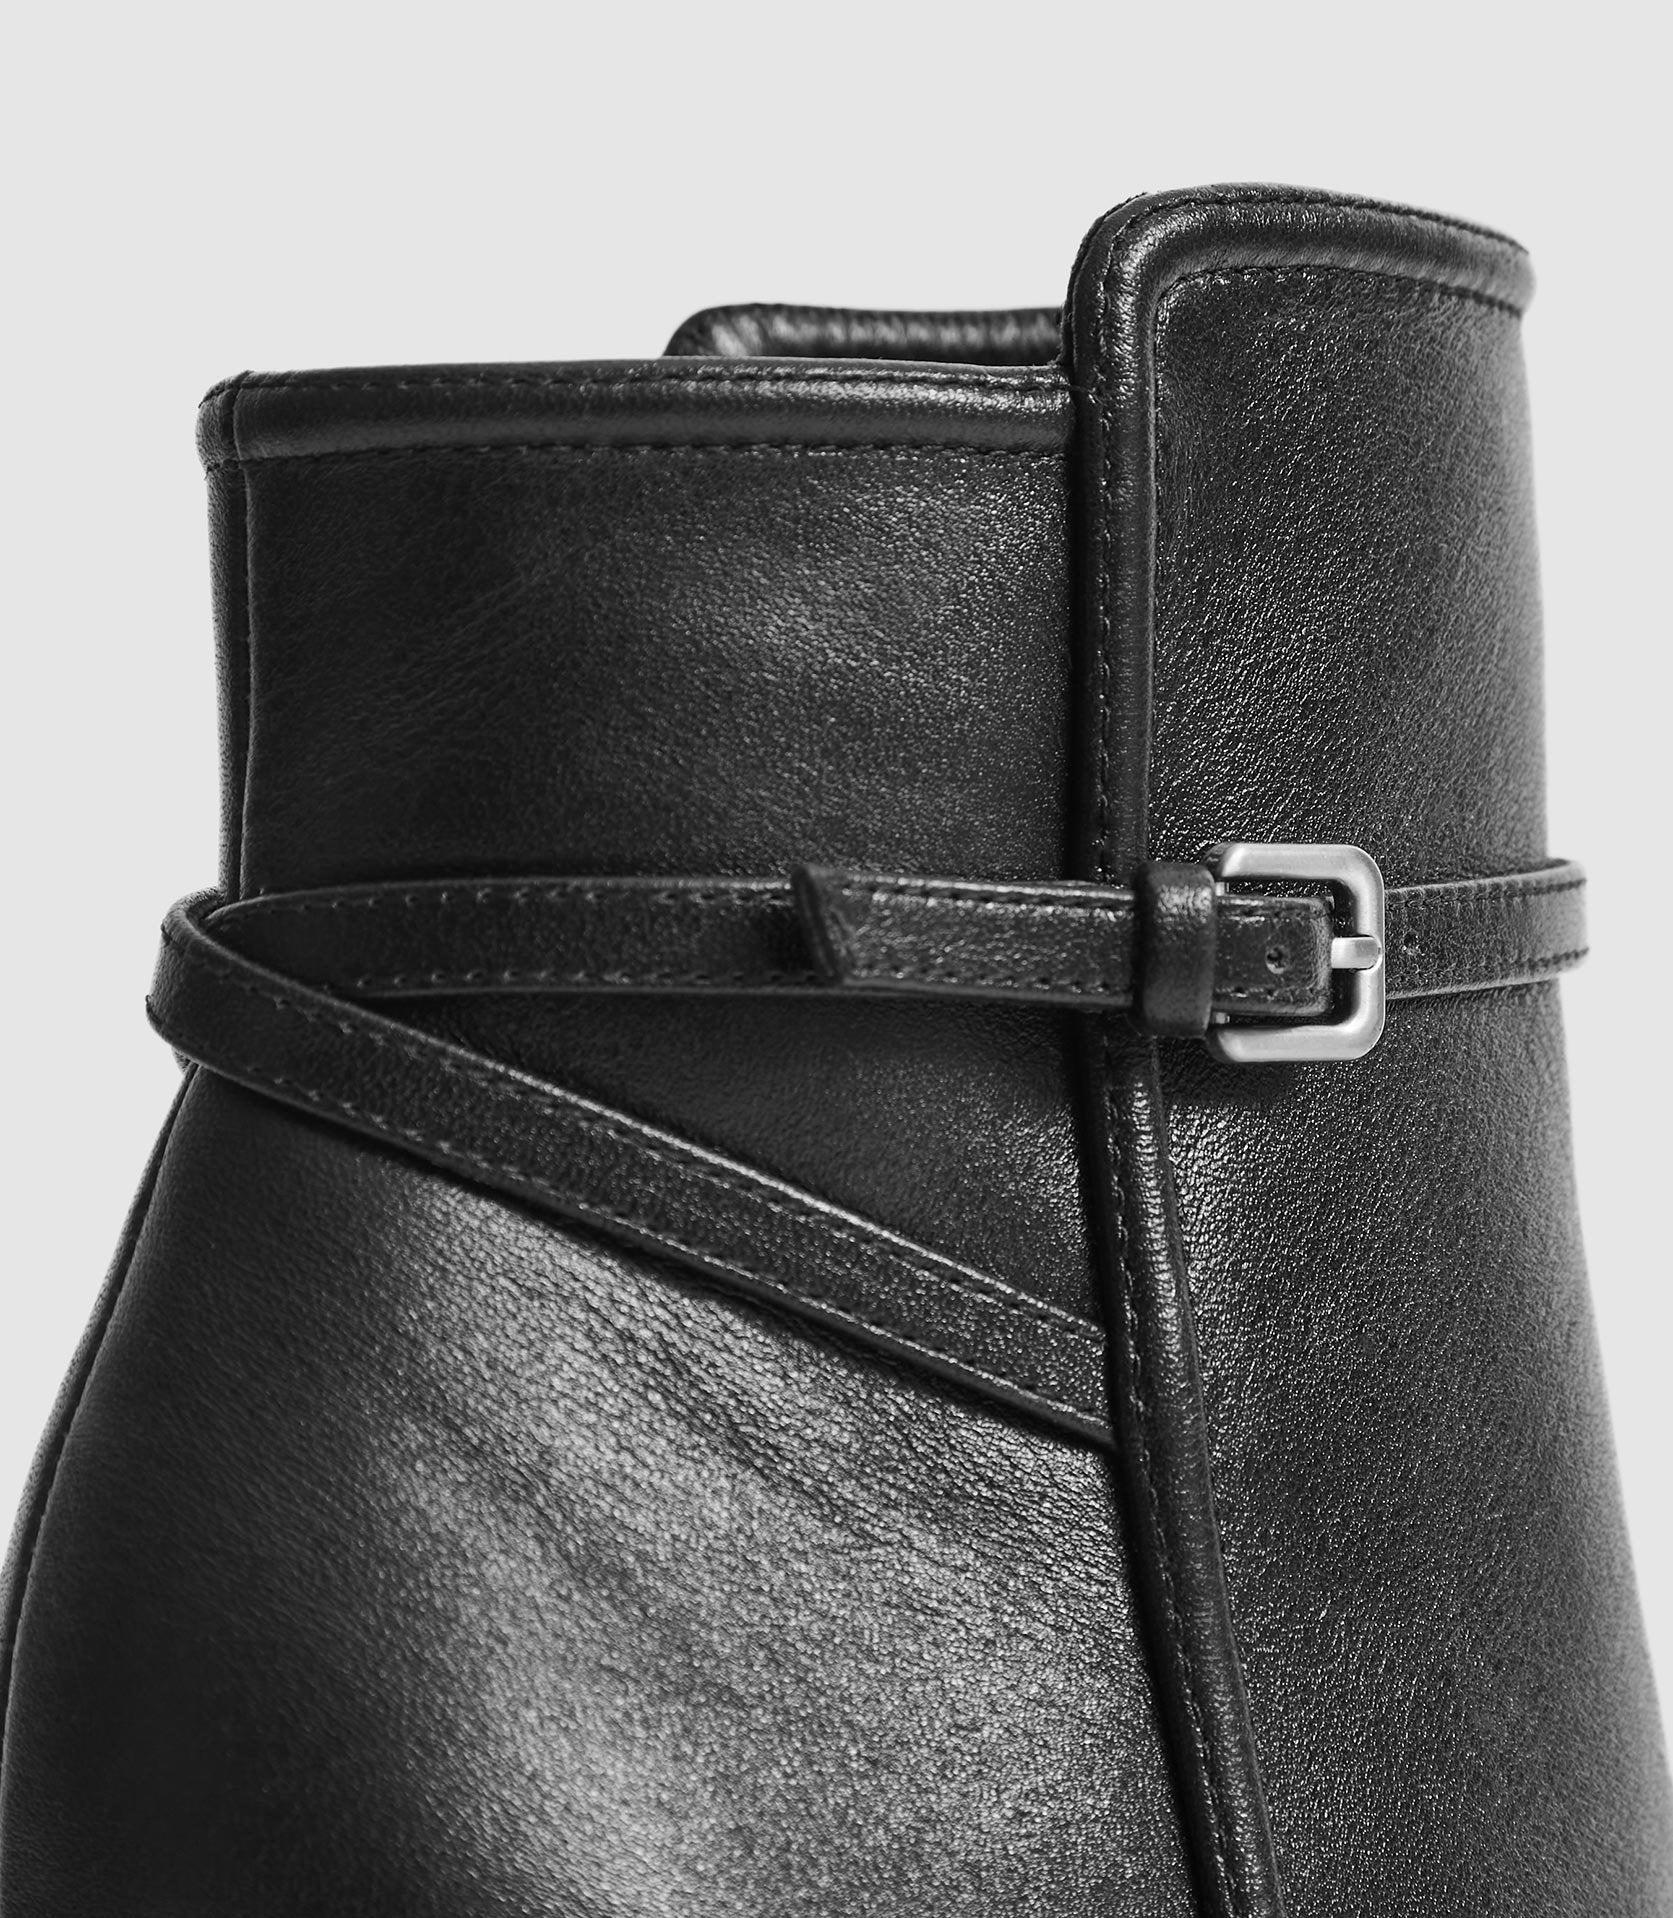 ADA ANKLE - LEATHER POINT-TOE ANKLE BOOTS 4